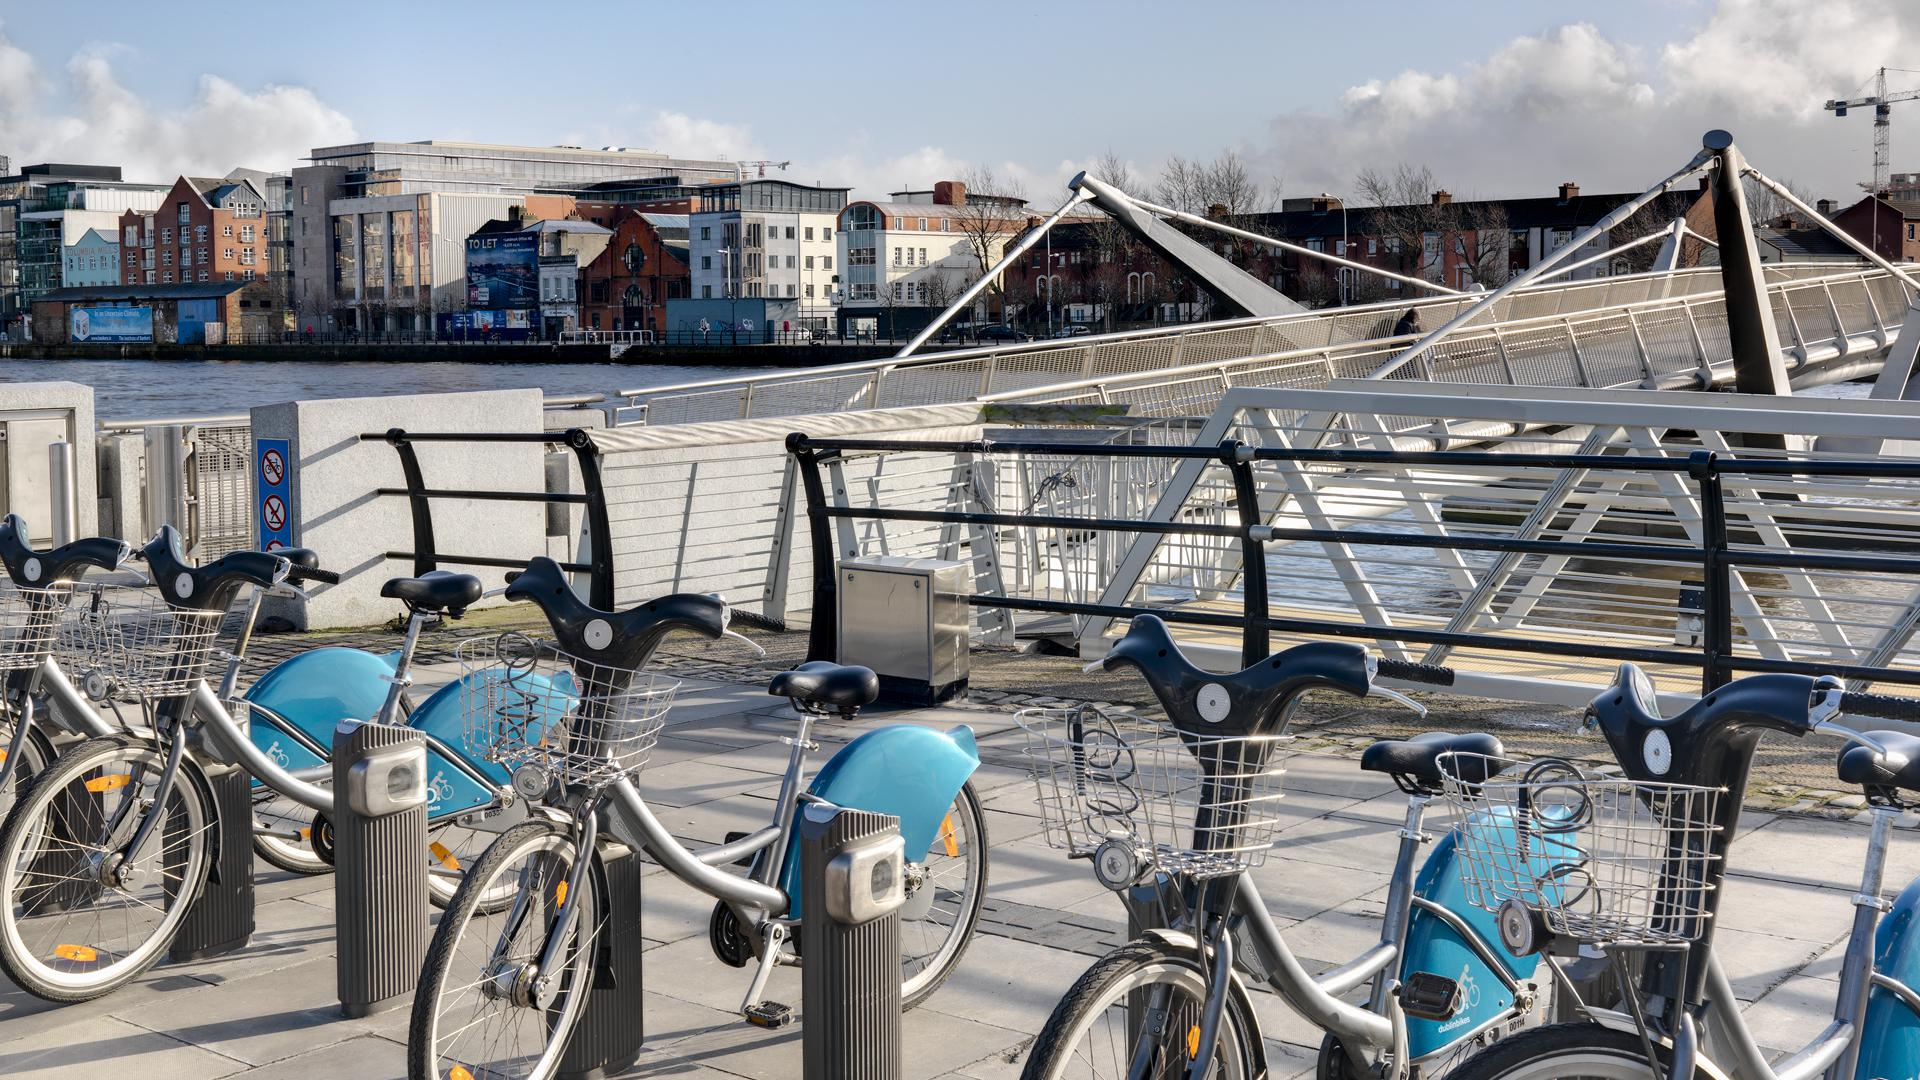 Numerous Dublin Bike stations, and ample car parking spaces